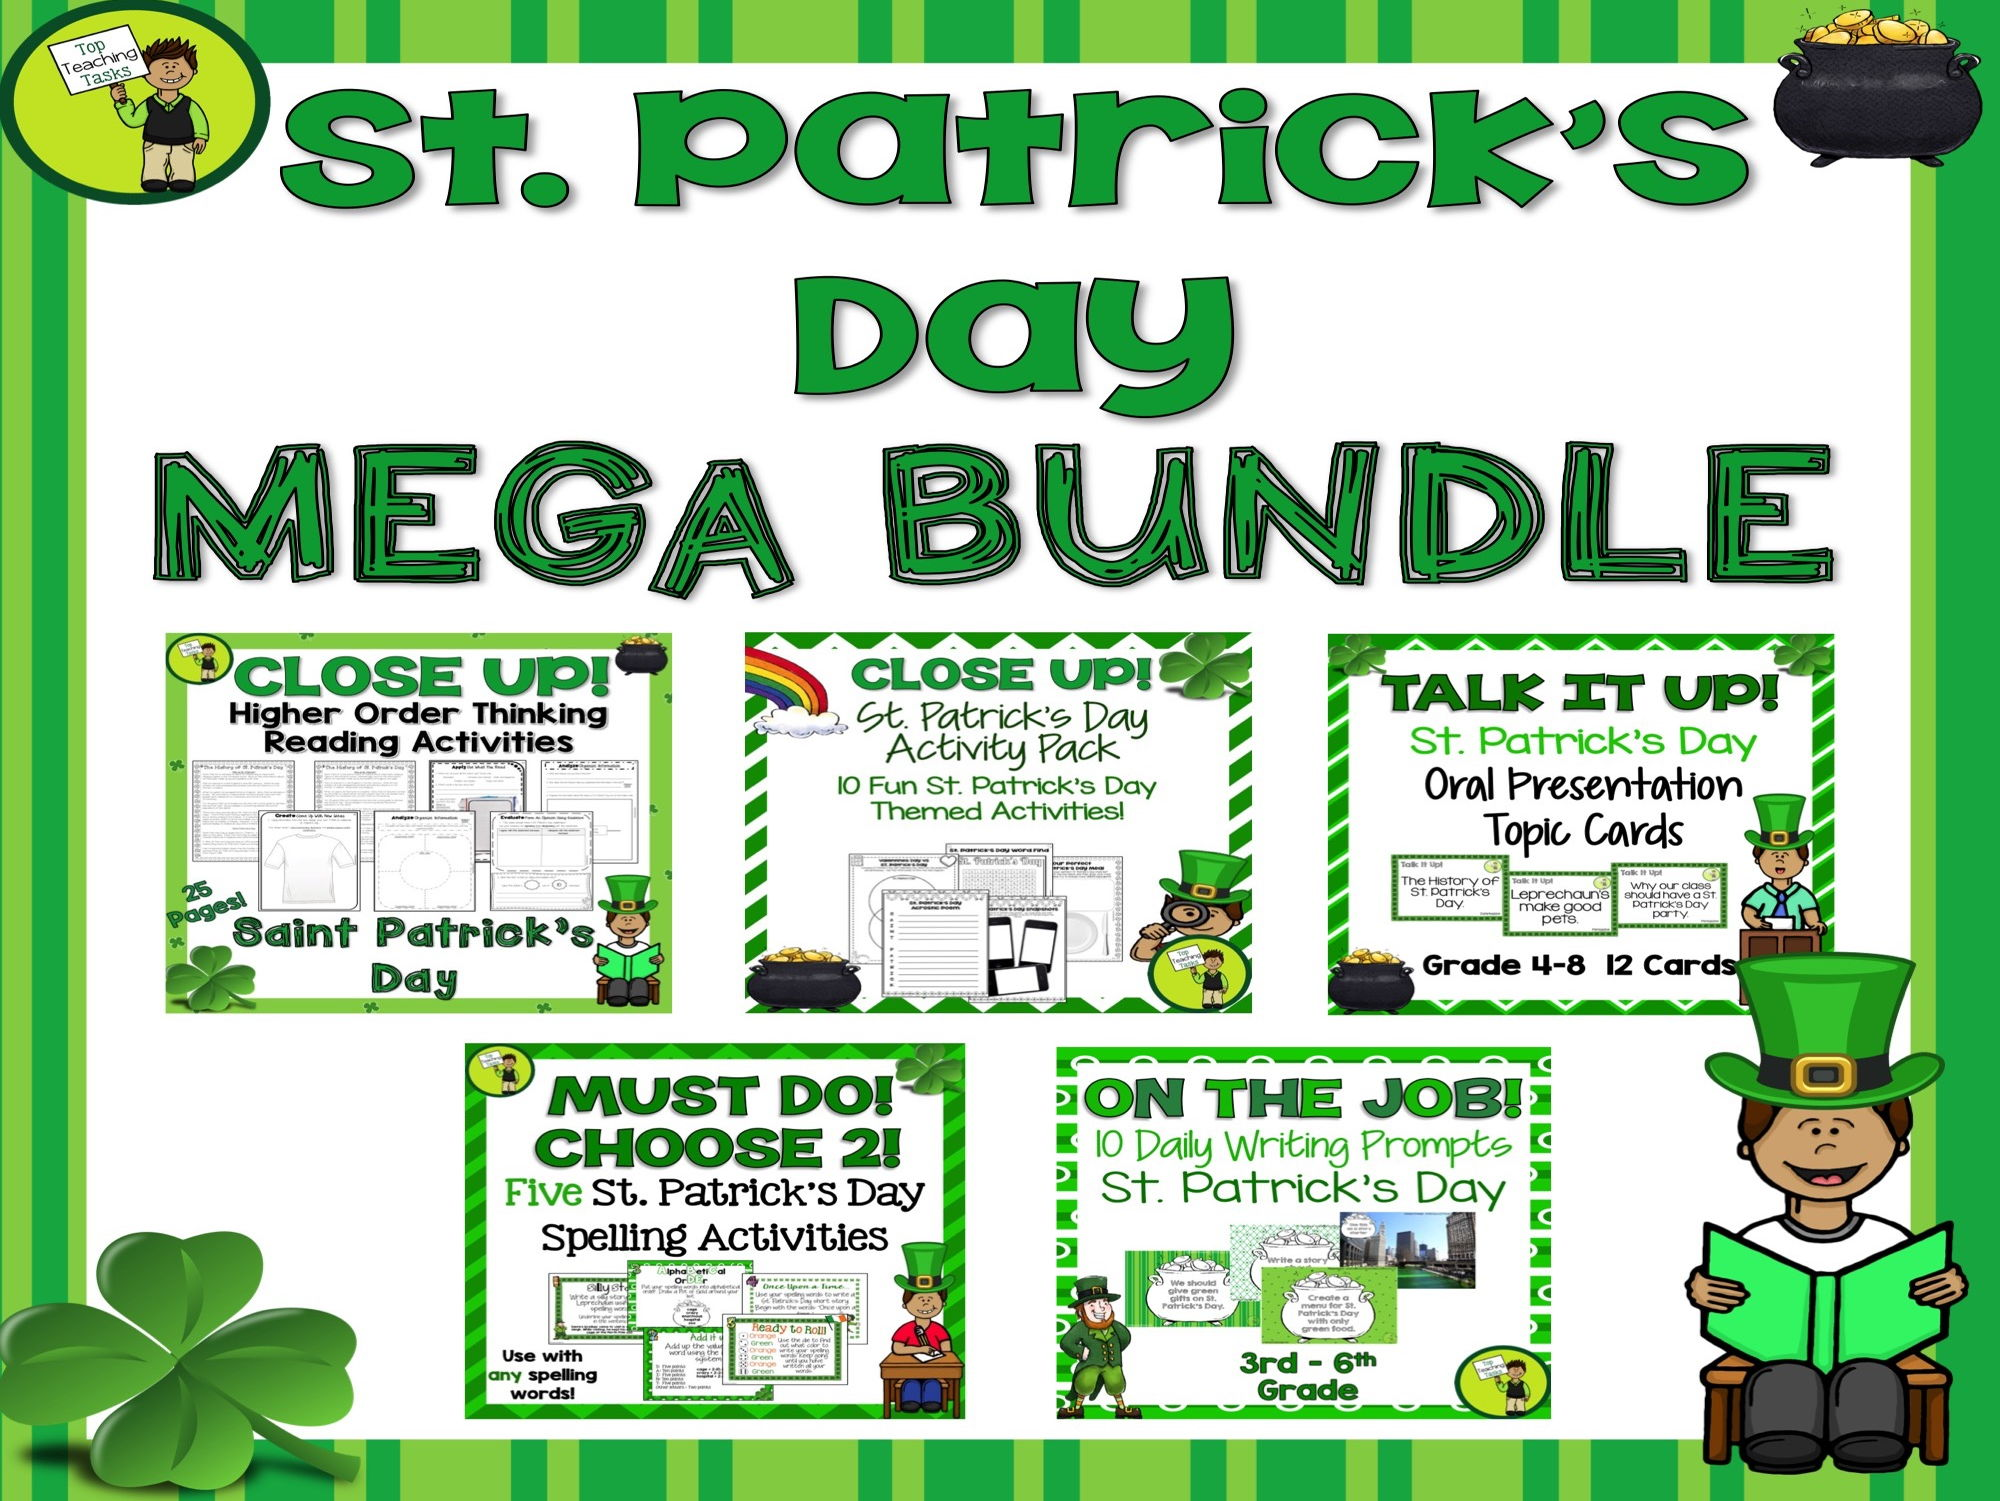 St. Patrick's Day Mega Bundle - St. Patrick's Day Themed ELA Resources